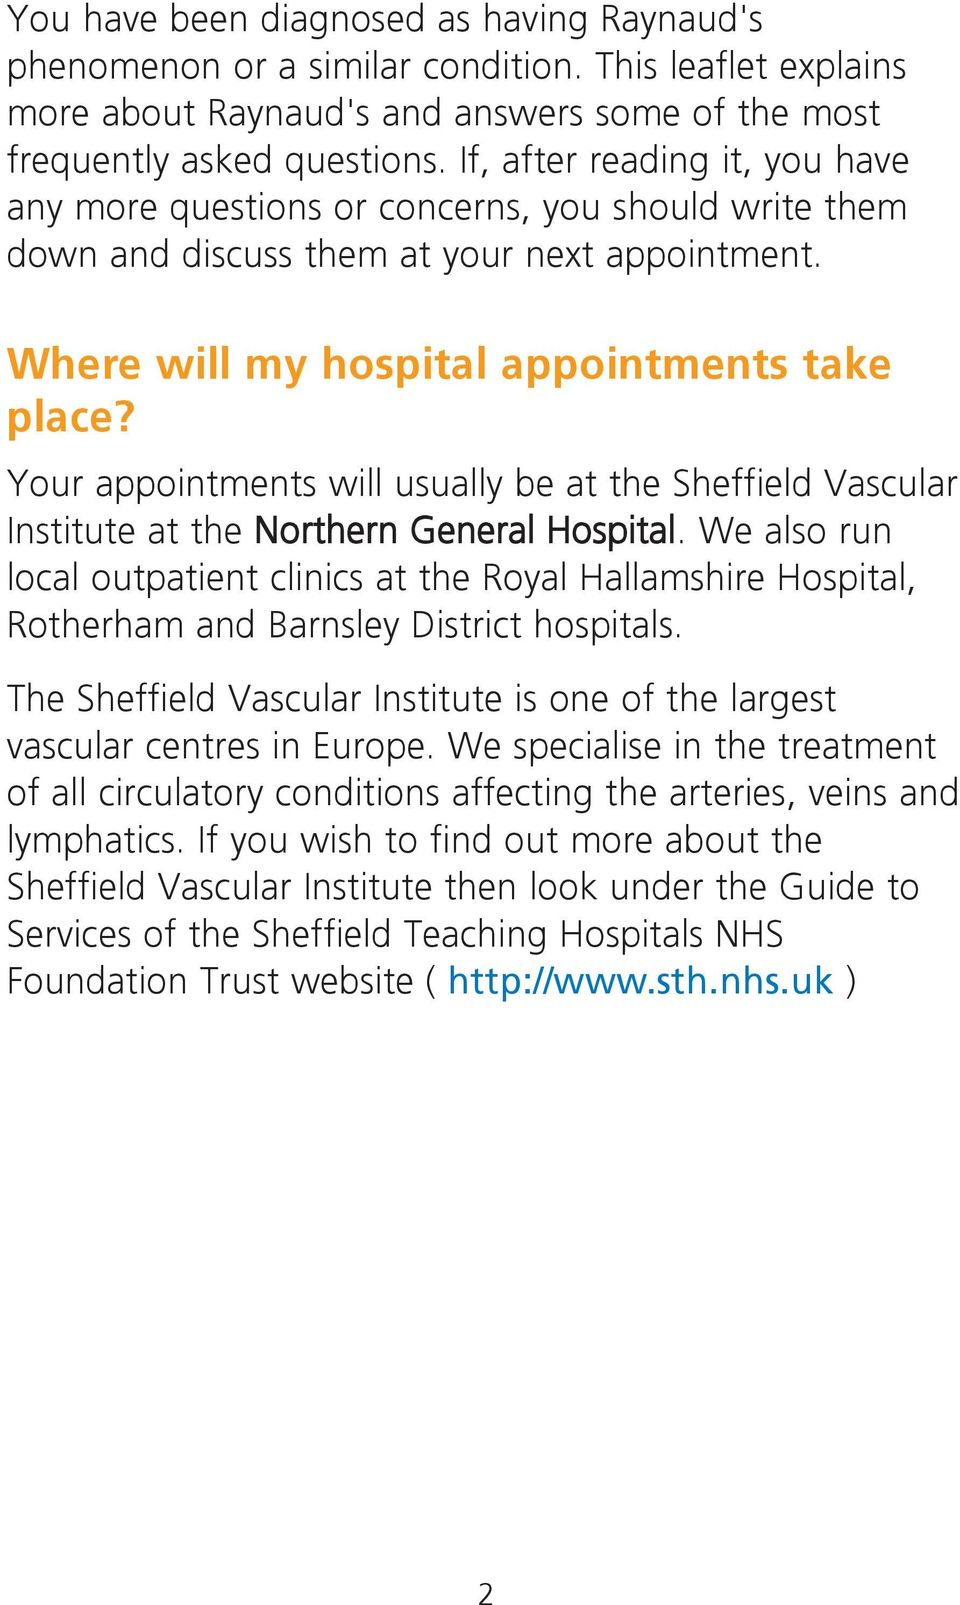 Your appointments will usually be at the Sheffield Vascular Institute at the Northern General Hospital.